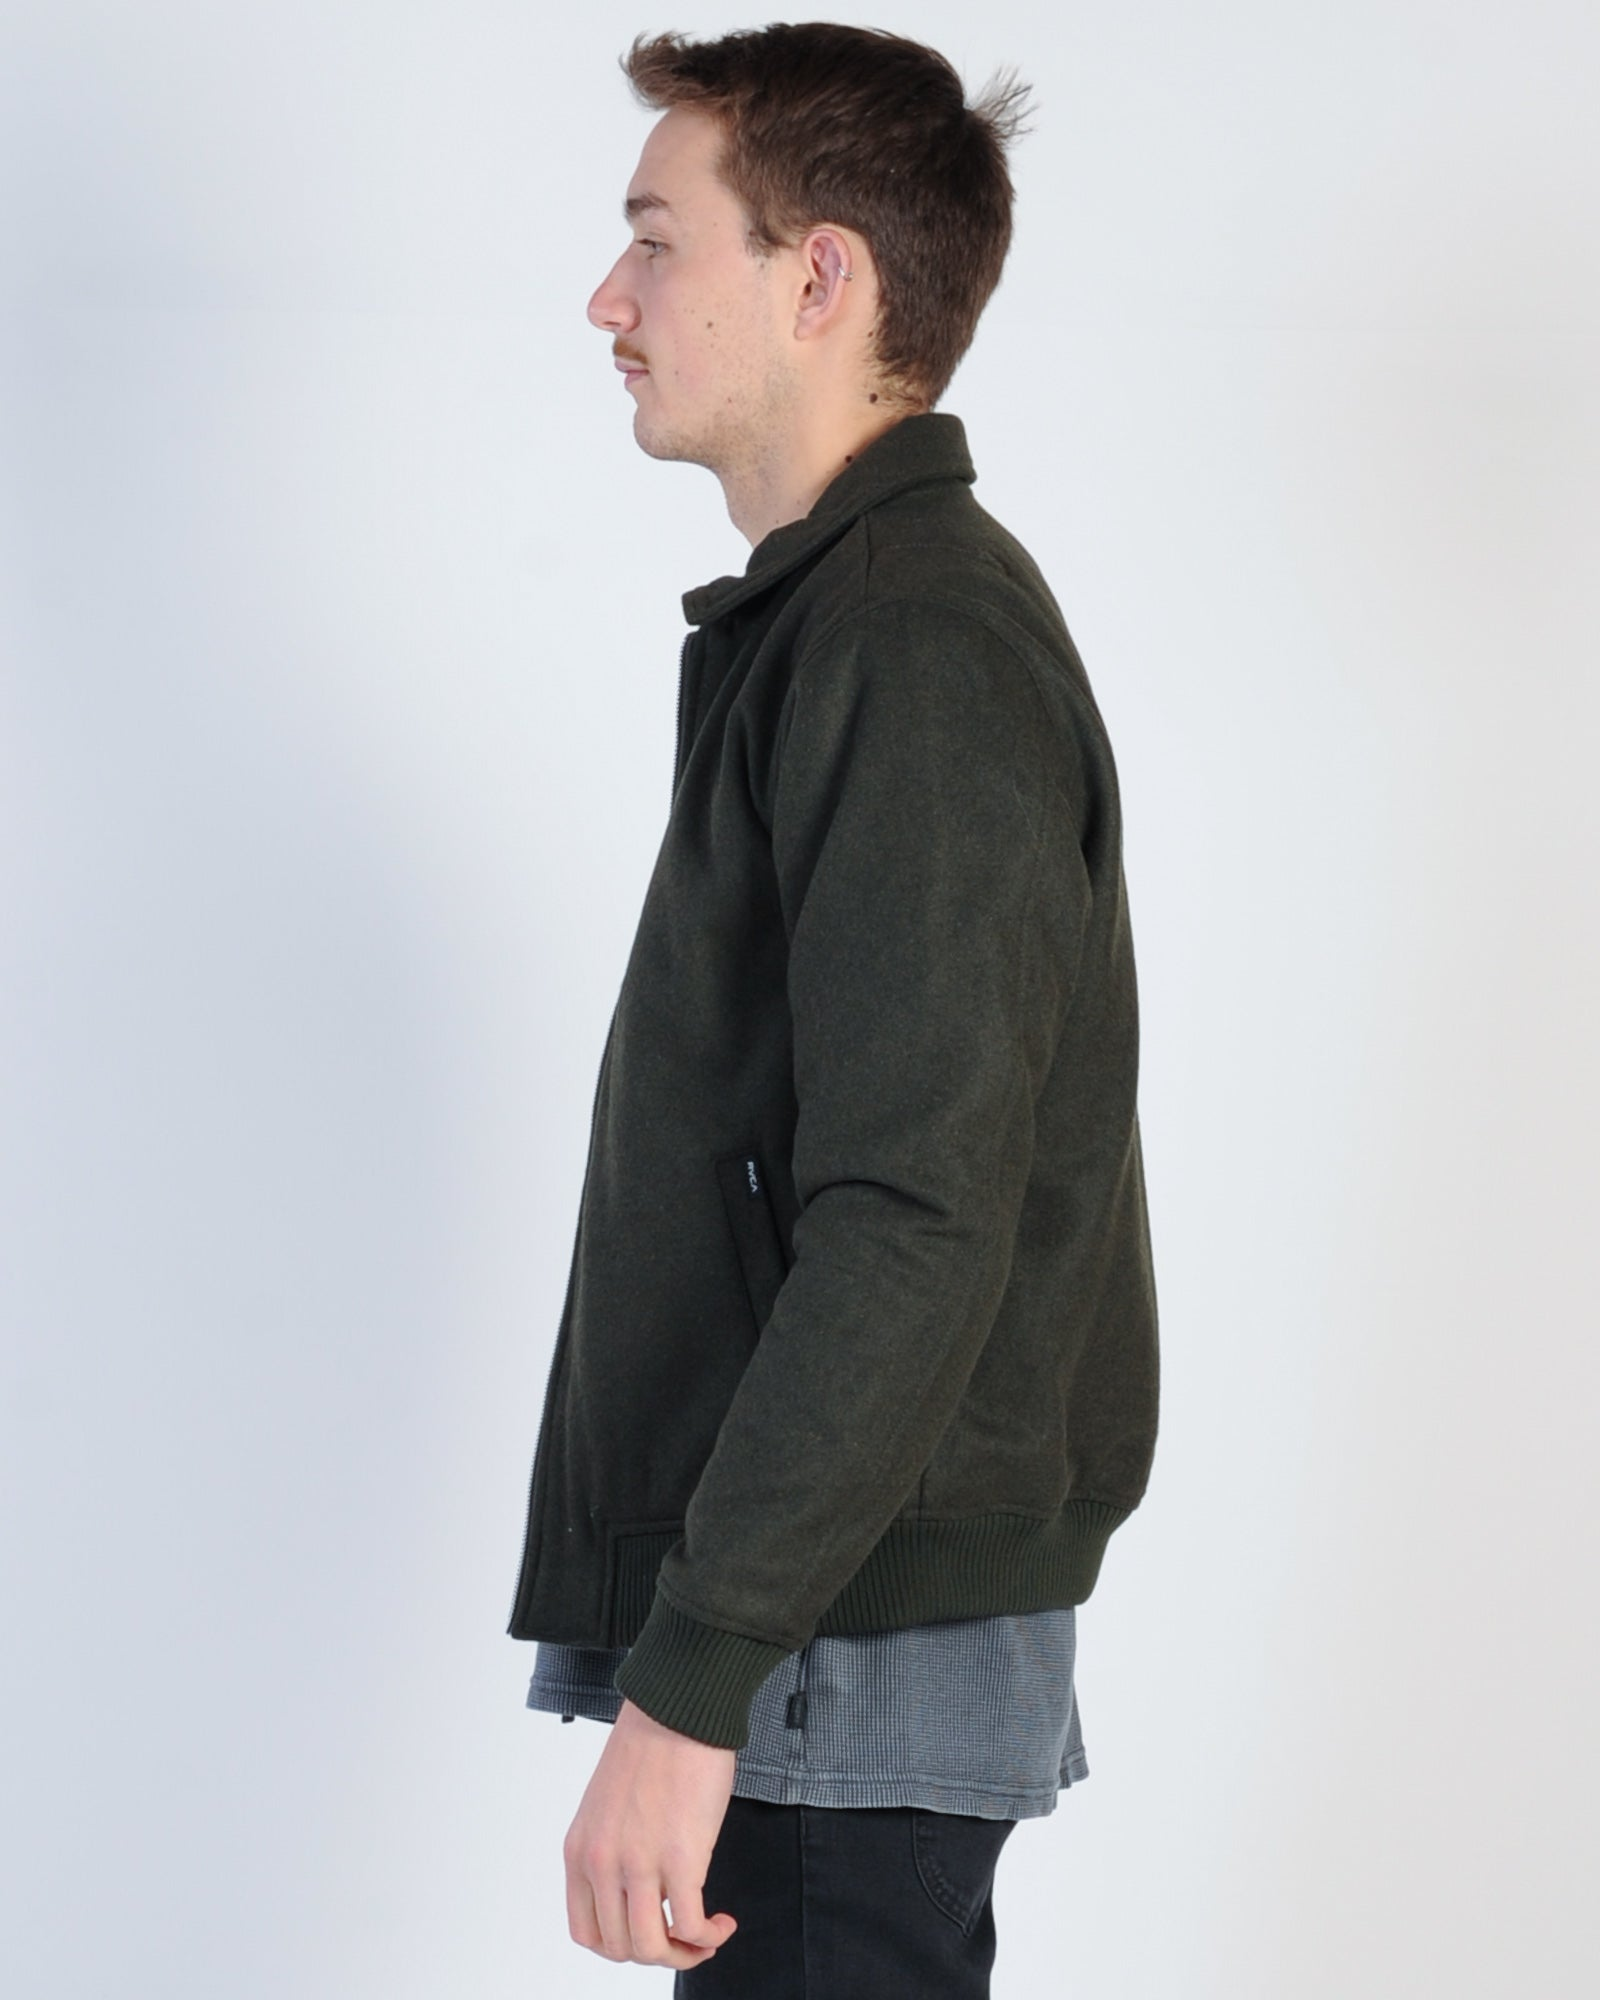 Rvca Kickin Bomber Jacket - Oliver Heather